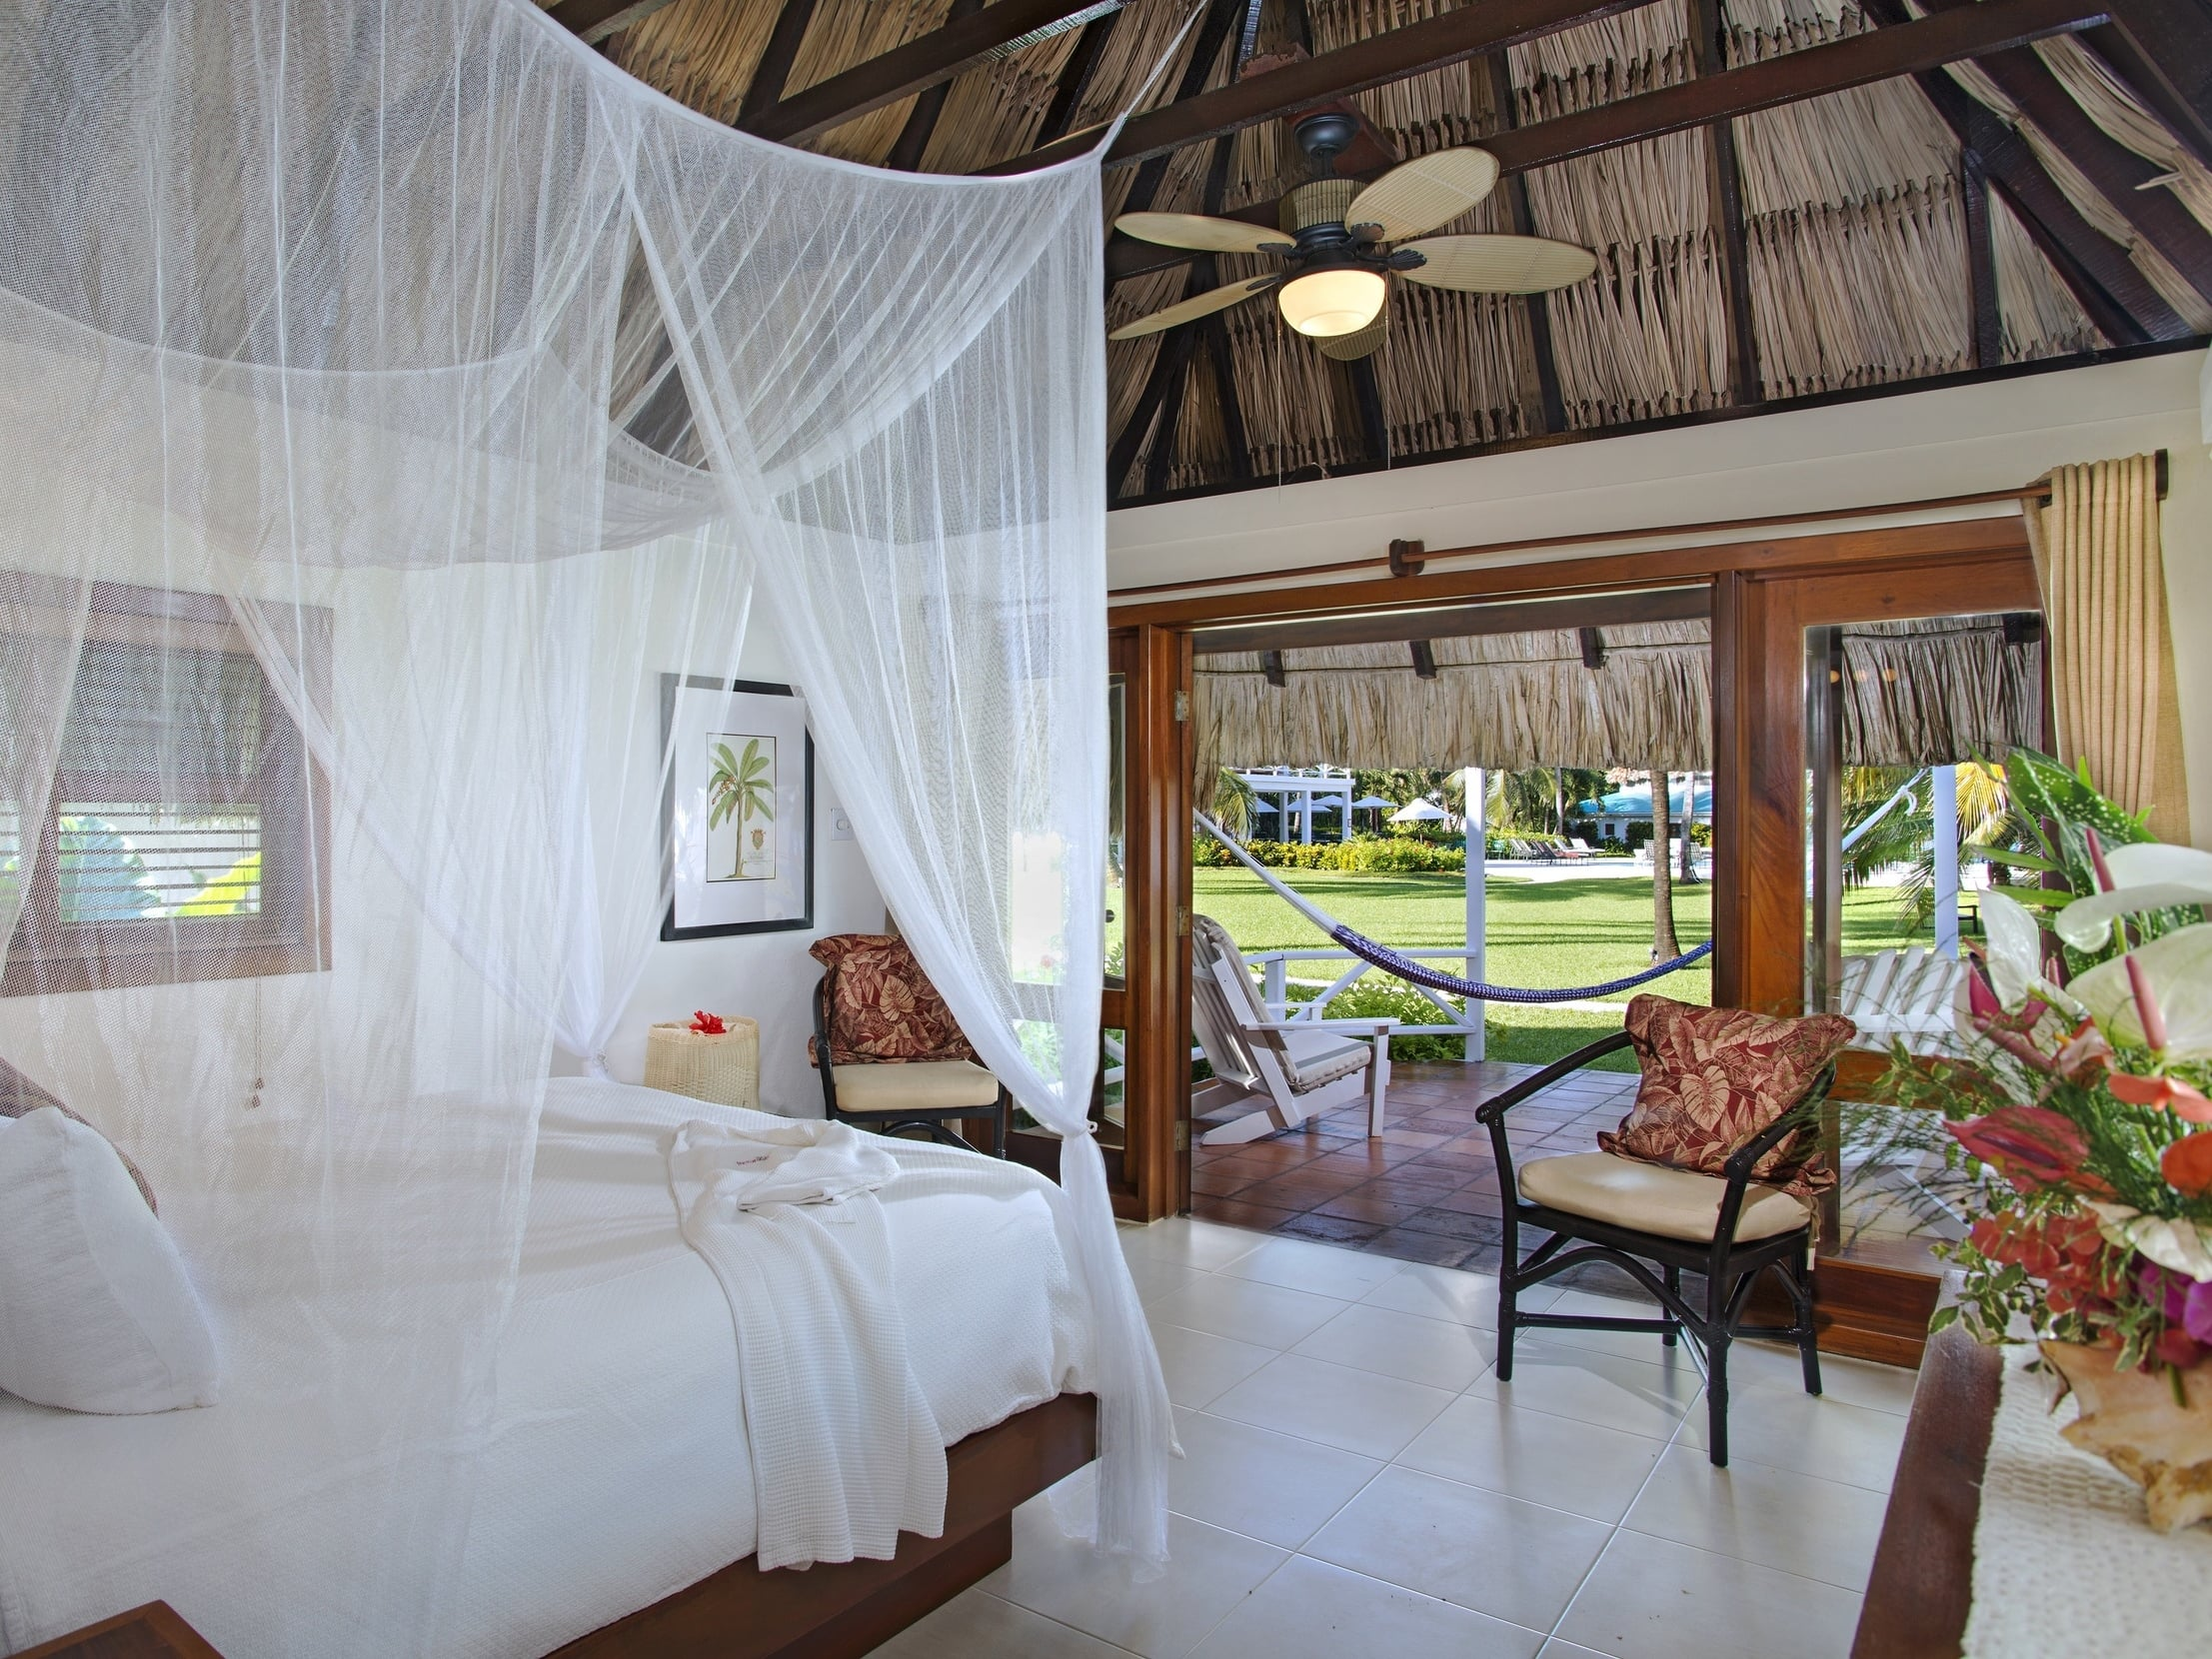 The private casitas at the Victoria House, Ambergris Caye, Belize